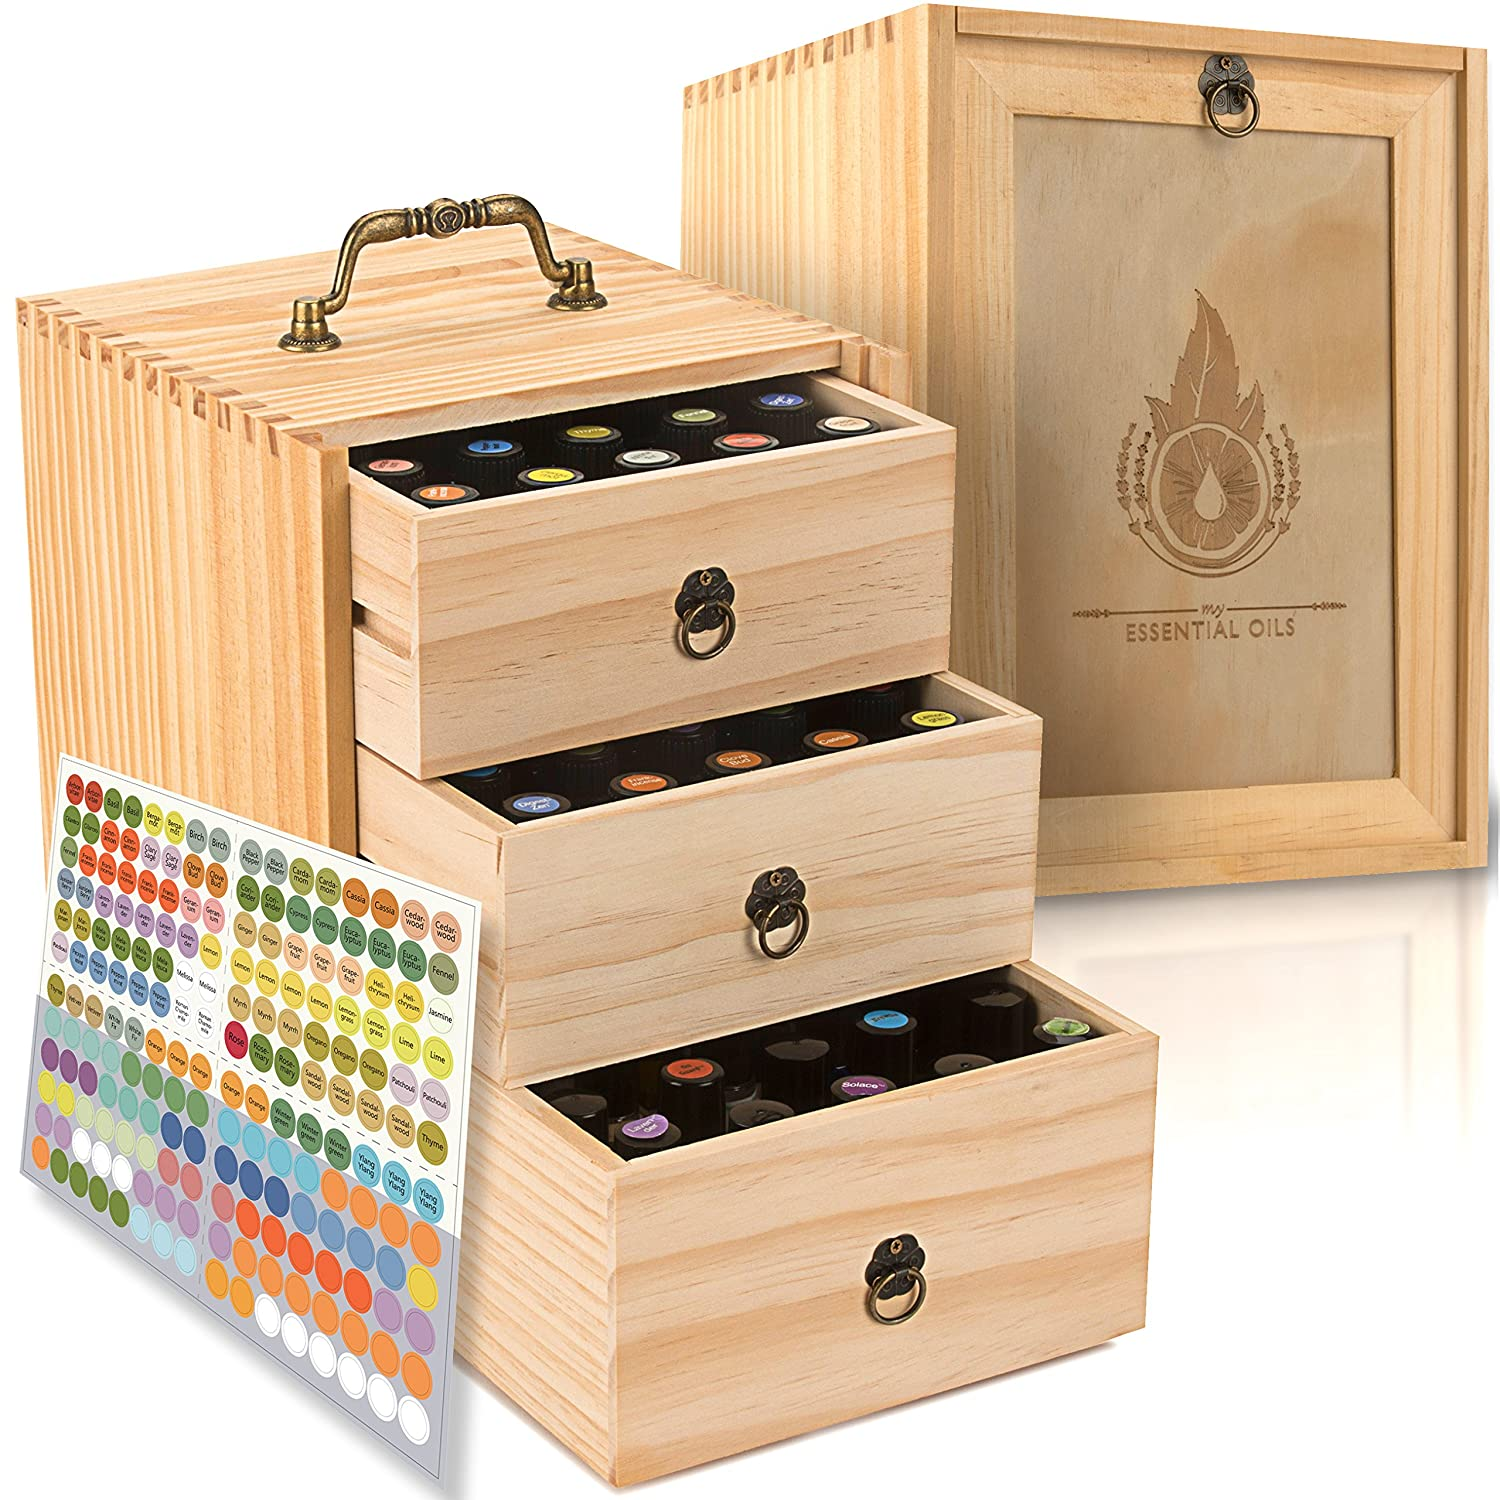 Essential Oil Box - Wooden Storage Case With Handle. Holds 75 Bottles & Roller Balls. 3 Tier Space Saver. Large Organizer Best For Keeping Your Oils Safe. Free EO Labels M&R Industries